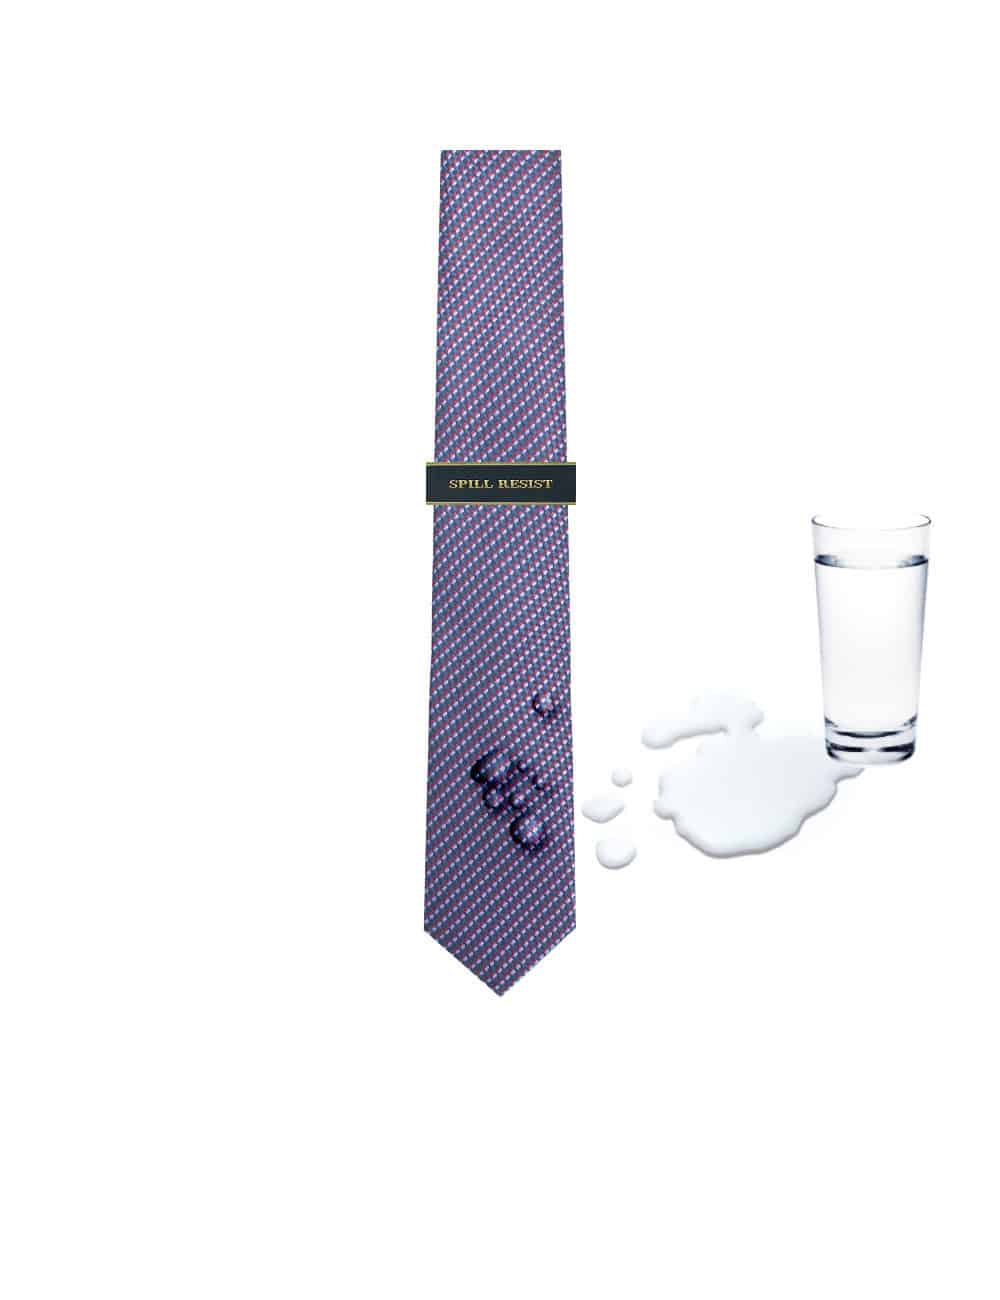 Navy and Sky Blue Dobby Spill Resist Woven Necktie NT46.9